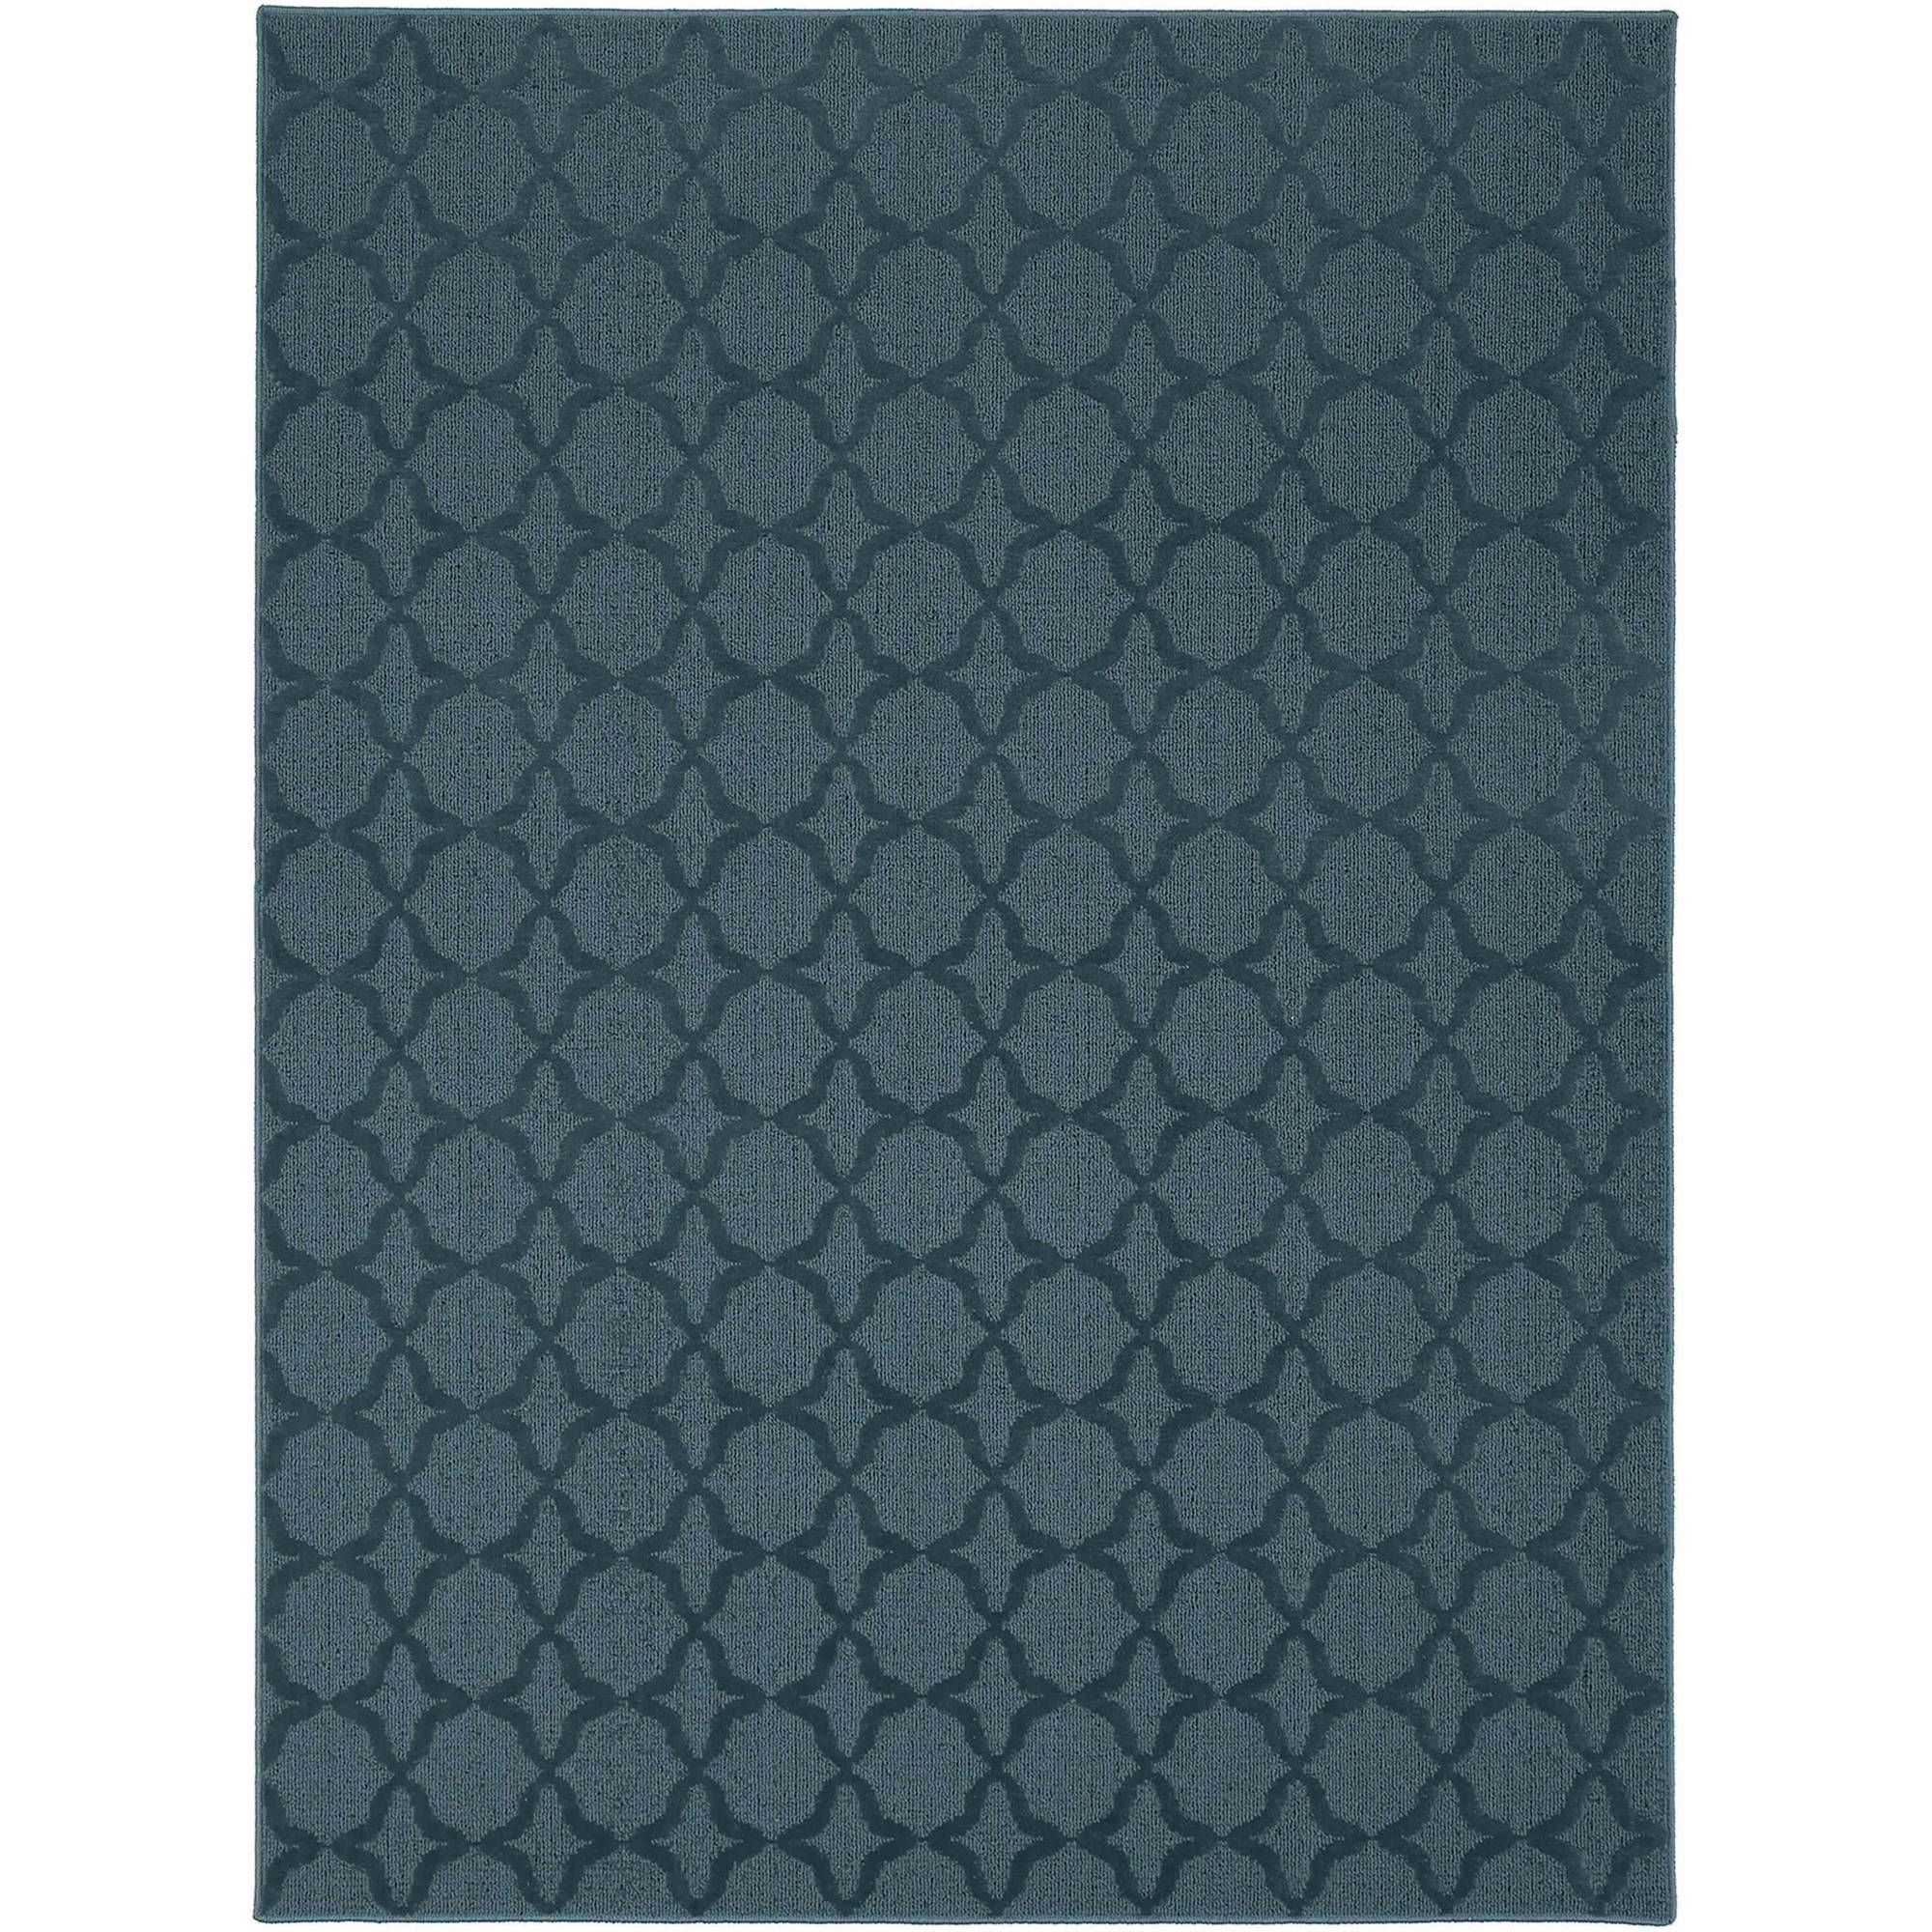 Garland Rug Sparta Seafoam Area Rug Available In Multiple Sizes And Colors